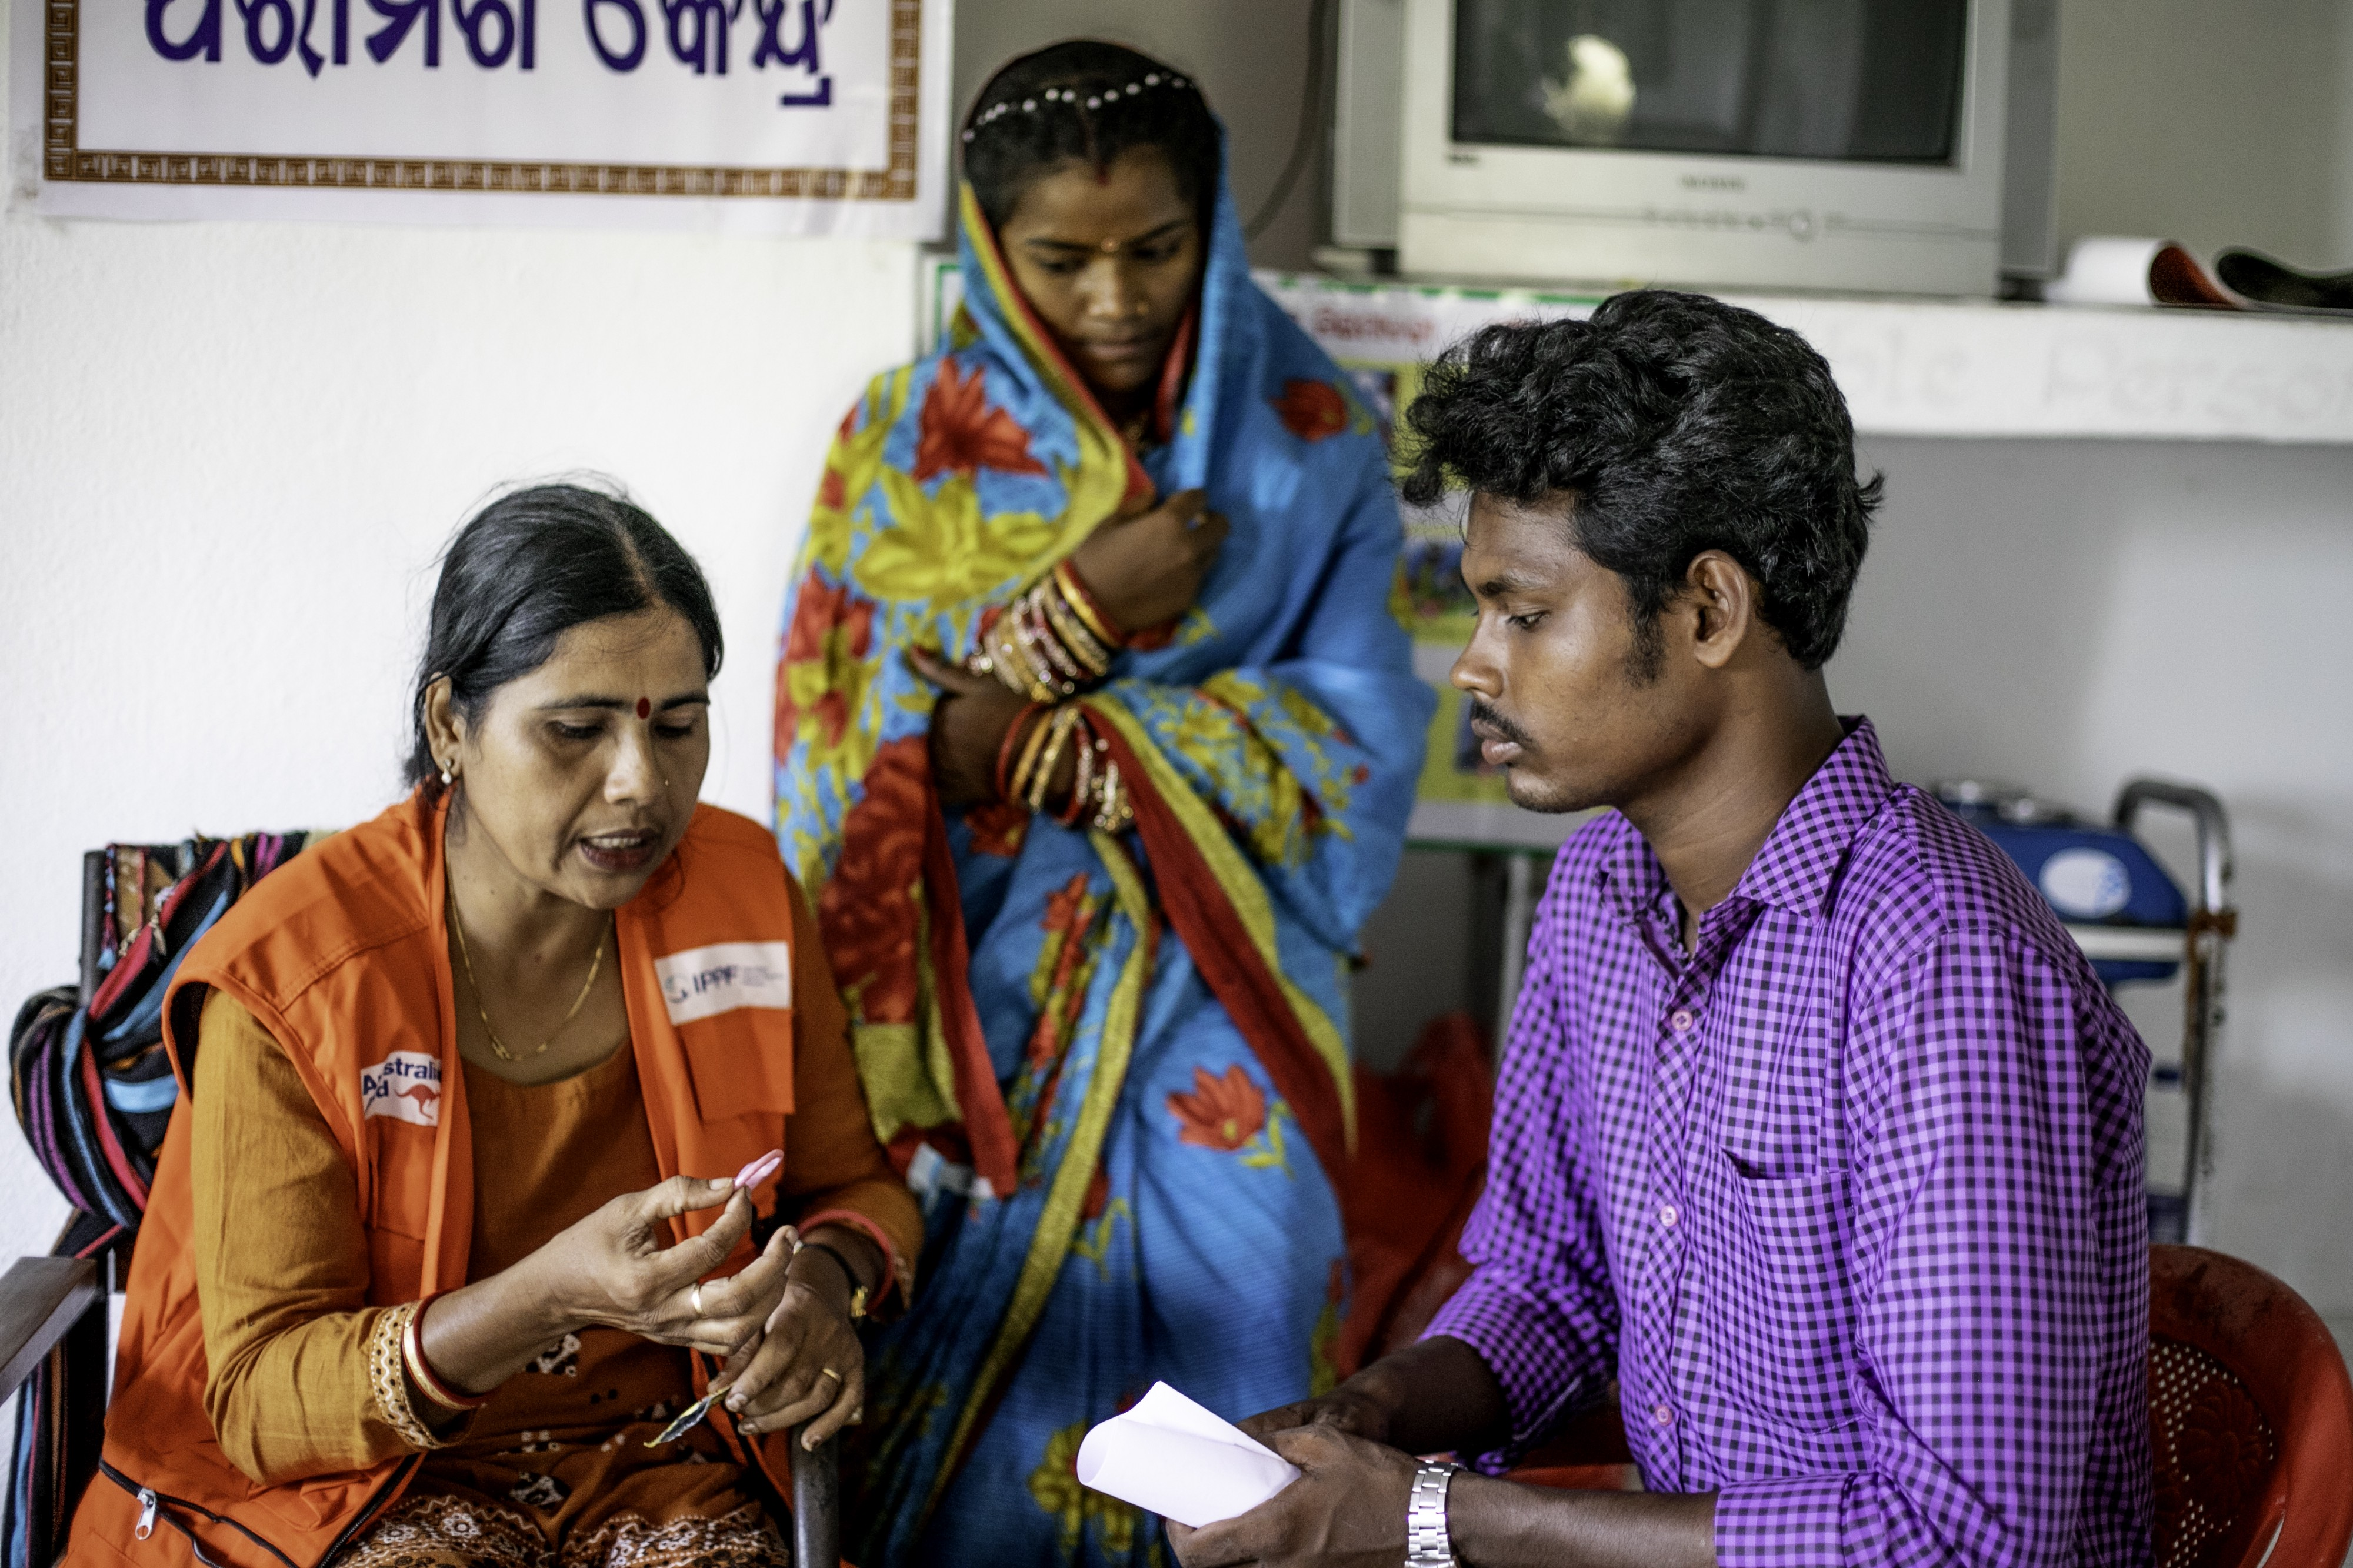 India — newlywed attend a clinic for advise on contraception after Cyclone Fani.